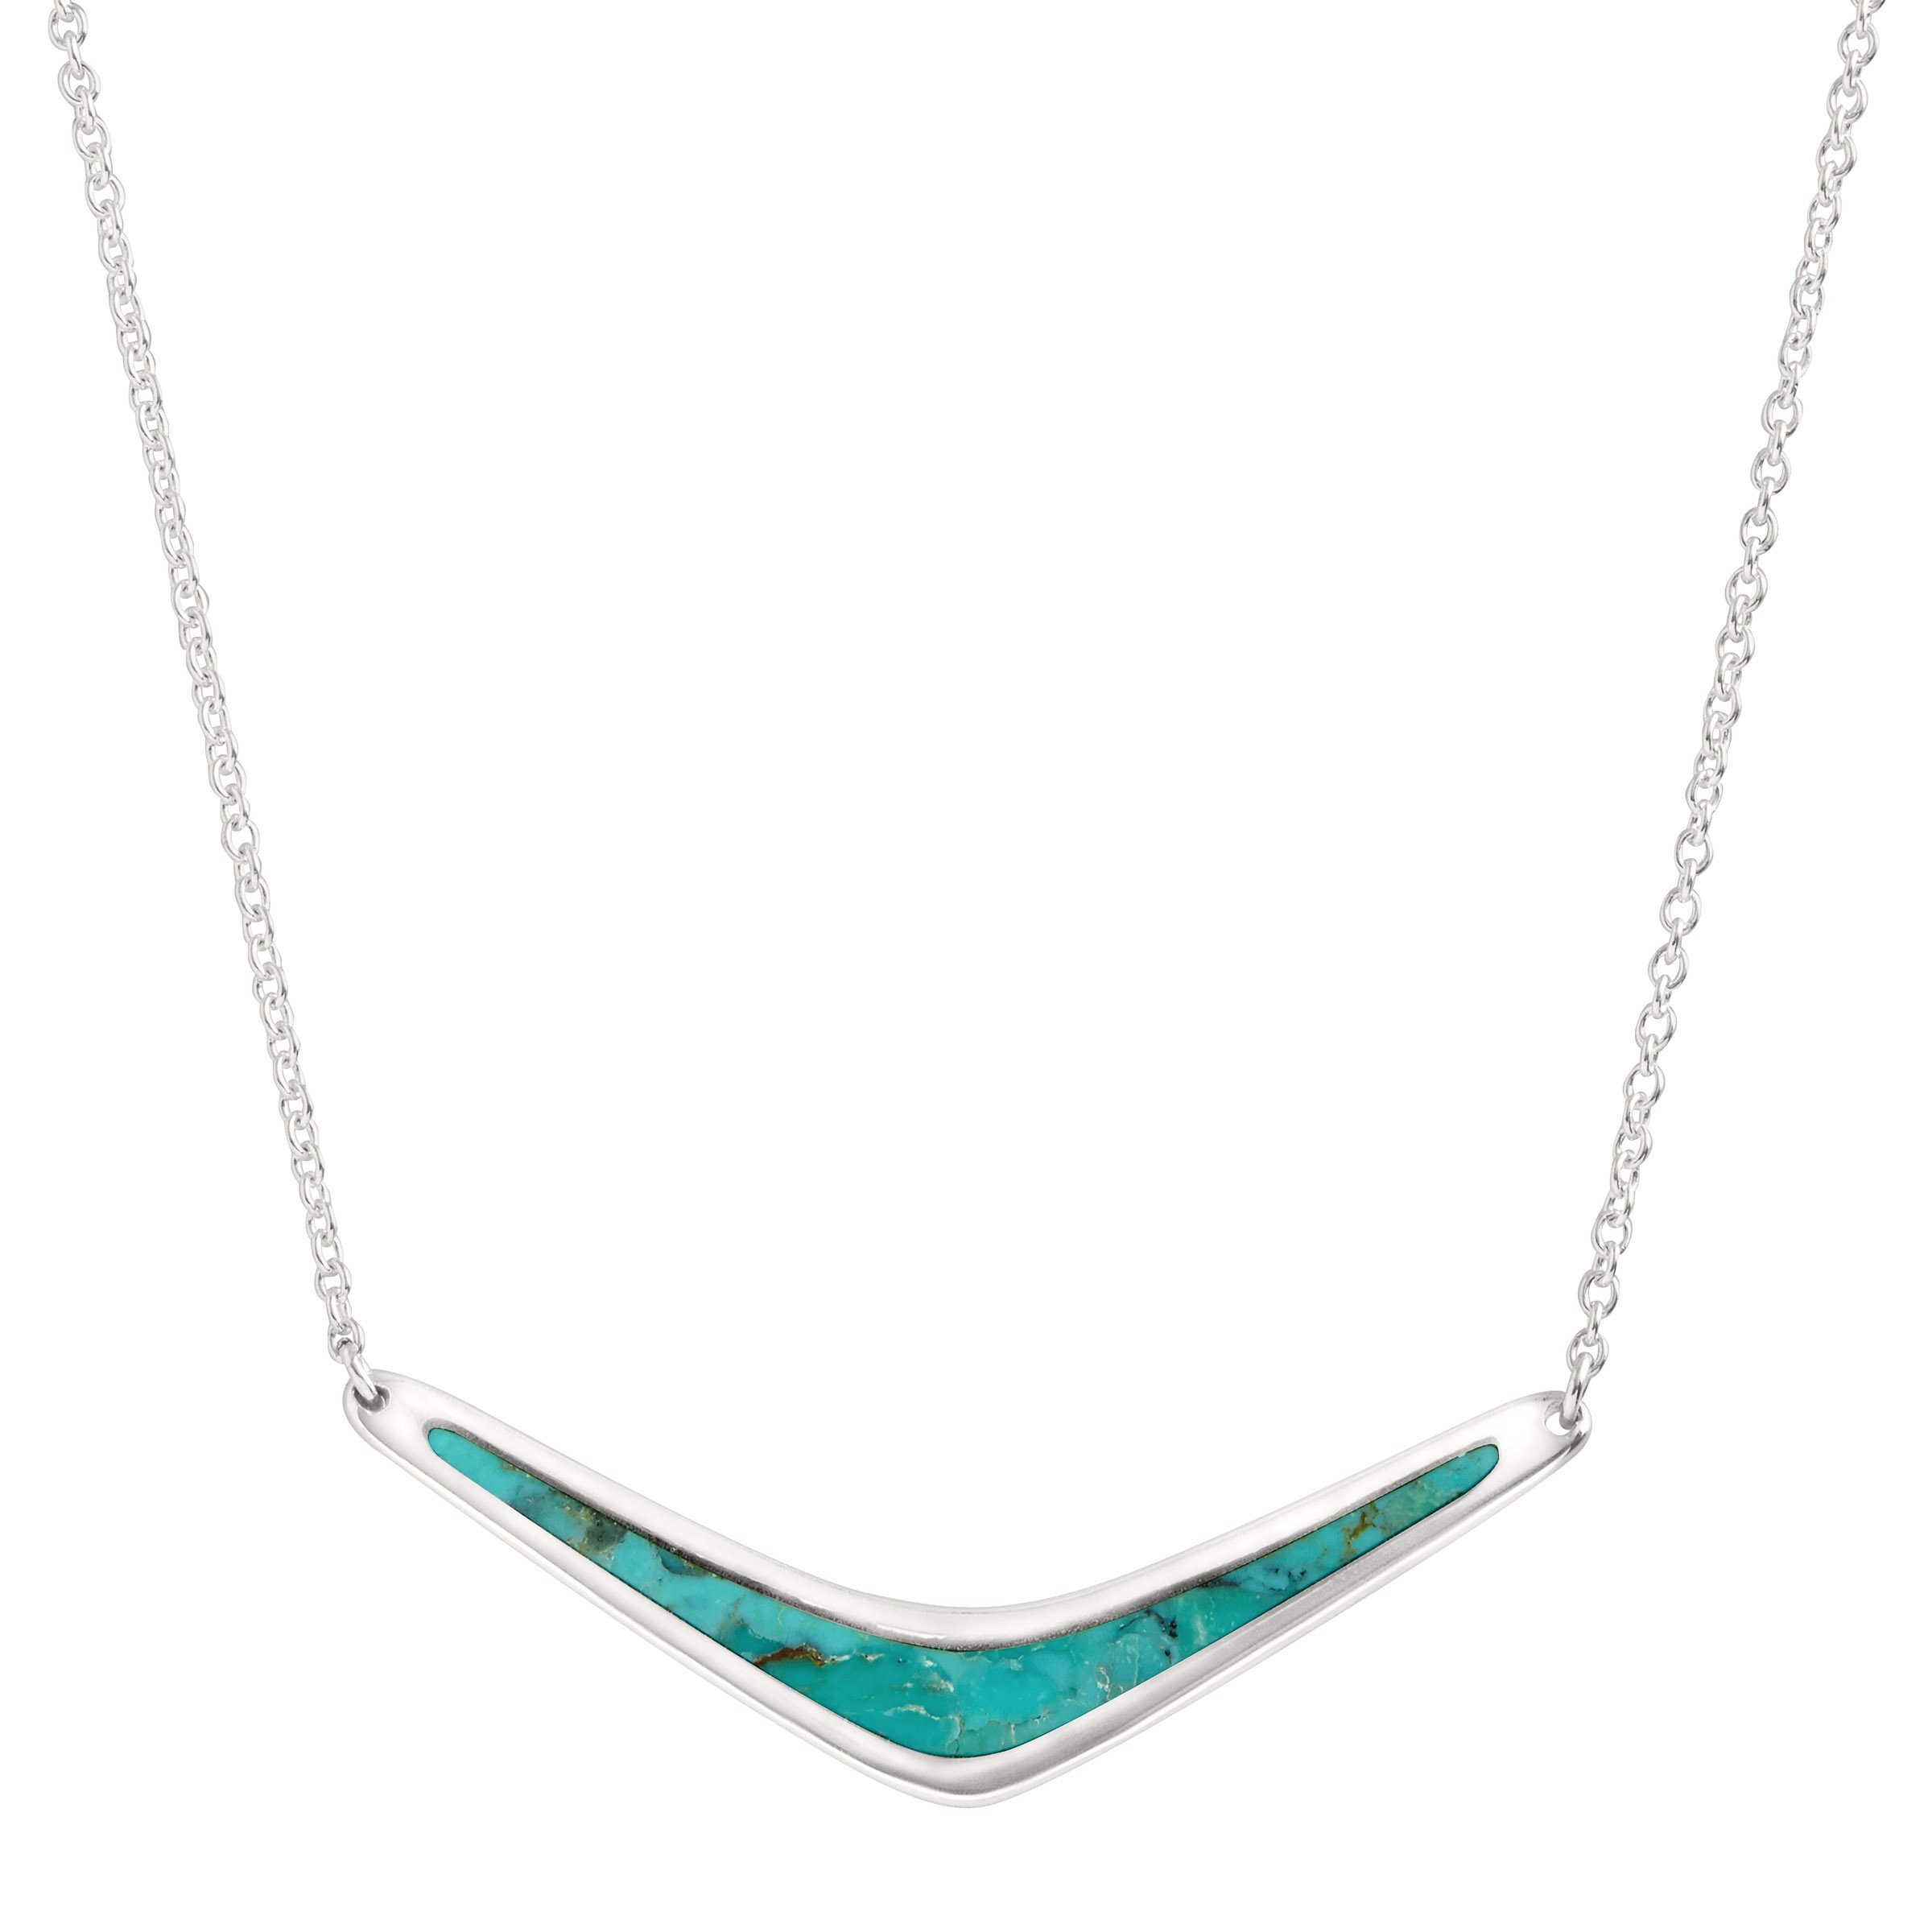 Silpada 'Reversible Boomerang' Compressed Turquoise Necklace in Sterling Silver, 18'' + 2'' Extender